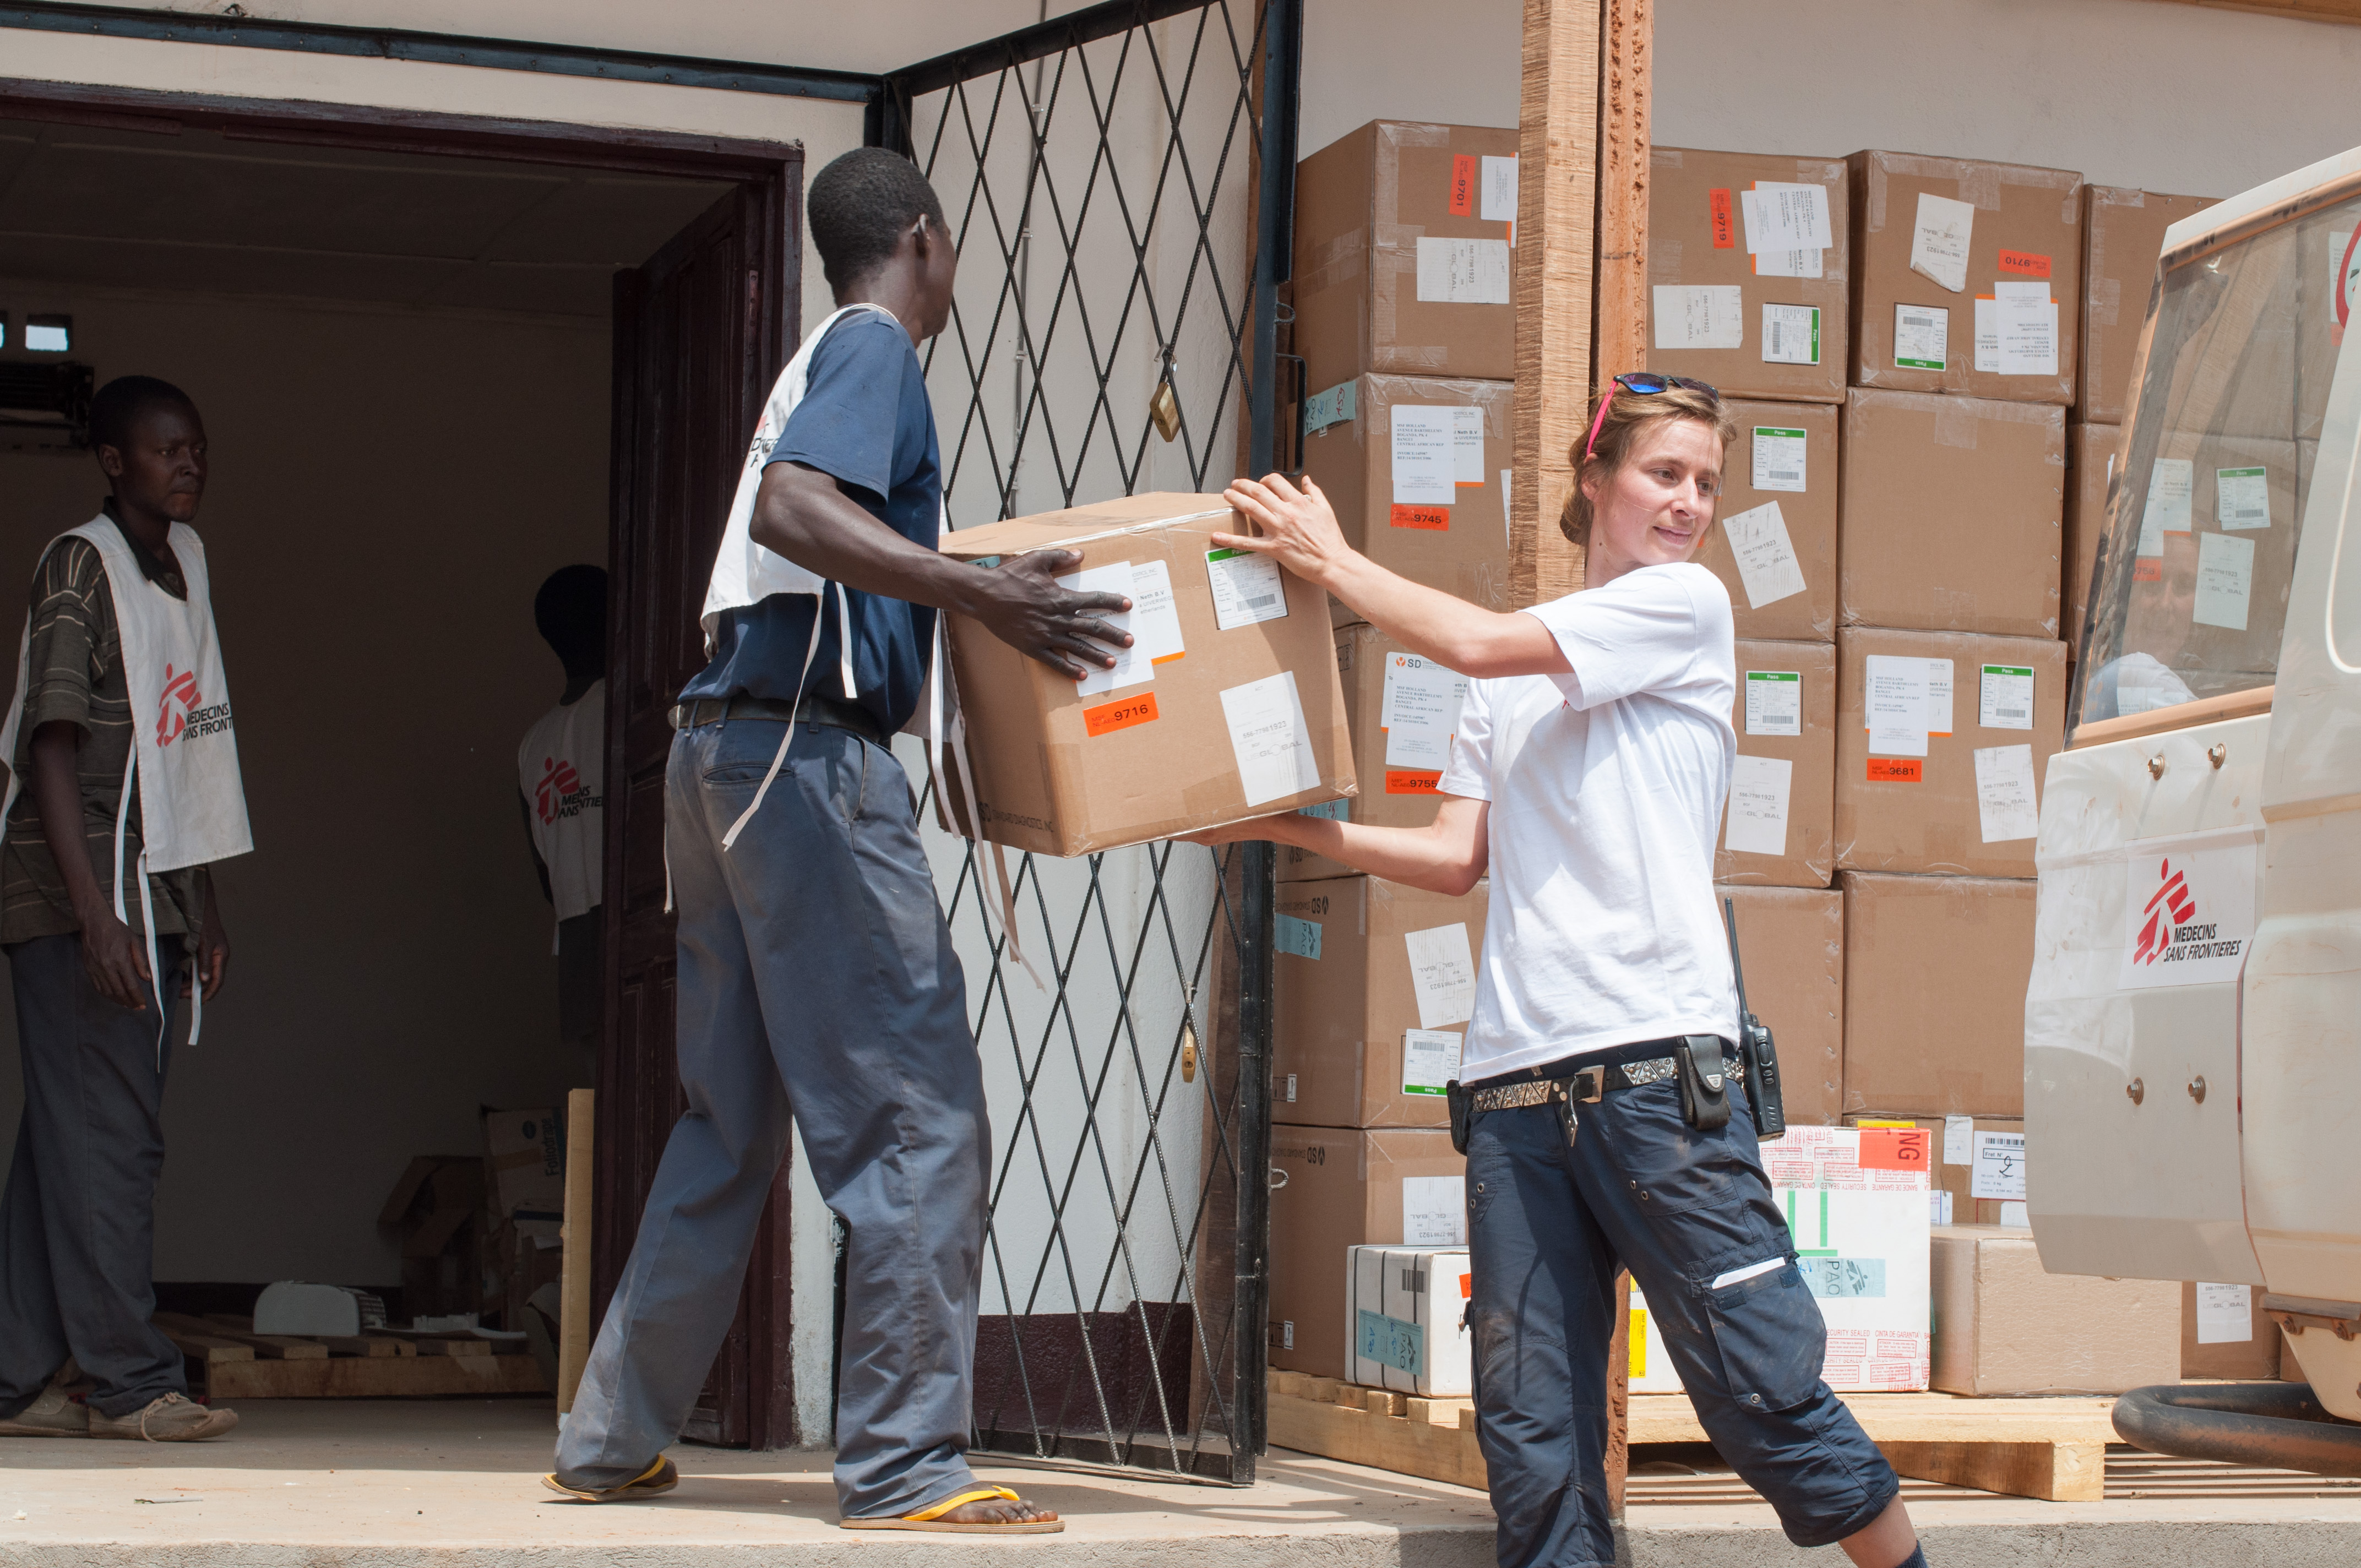 © Giorgio Contessi/MSF - MSF logistician Jennifer Bock and her colleagues store 58 boxes containing one ton of medical supplies, mainly malaria testing kits, destined for the MSF-supported health centre in Boguila, Central African Republic.